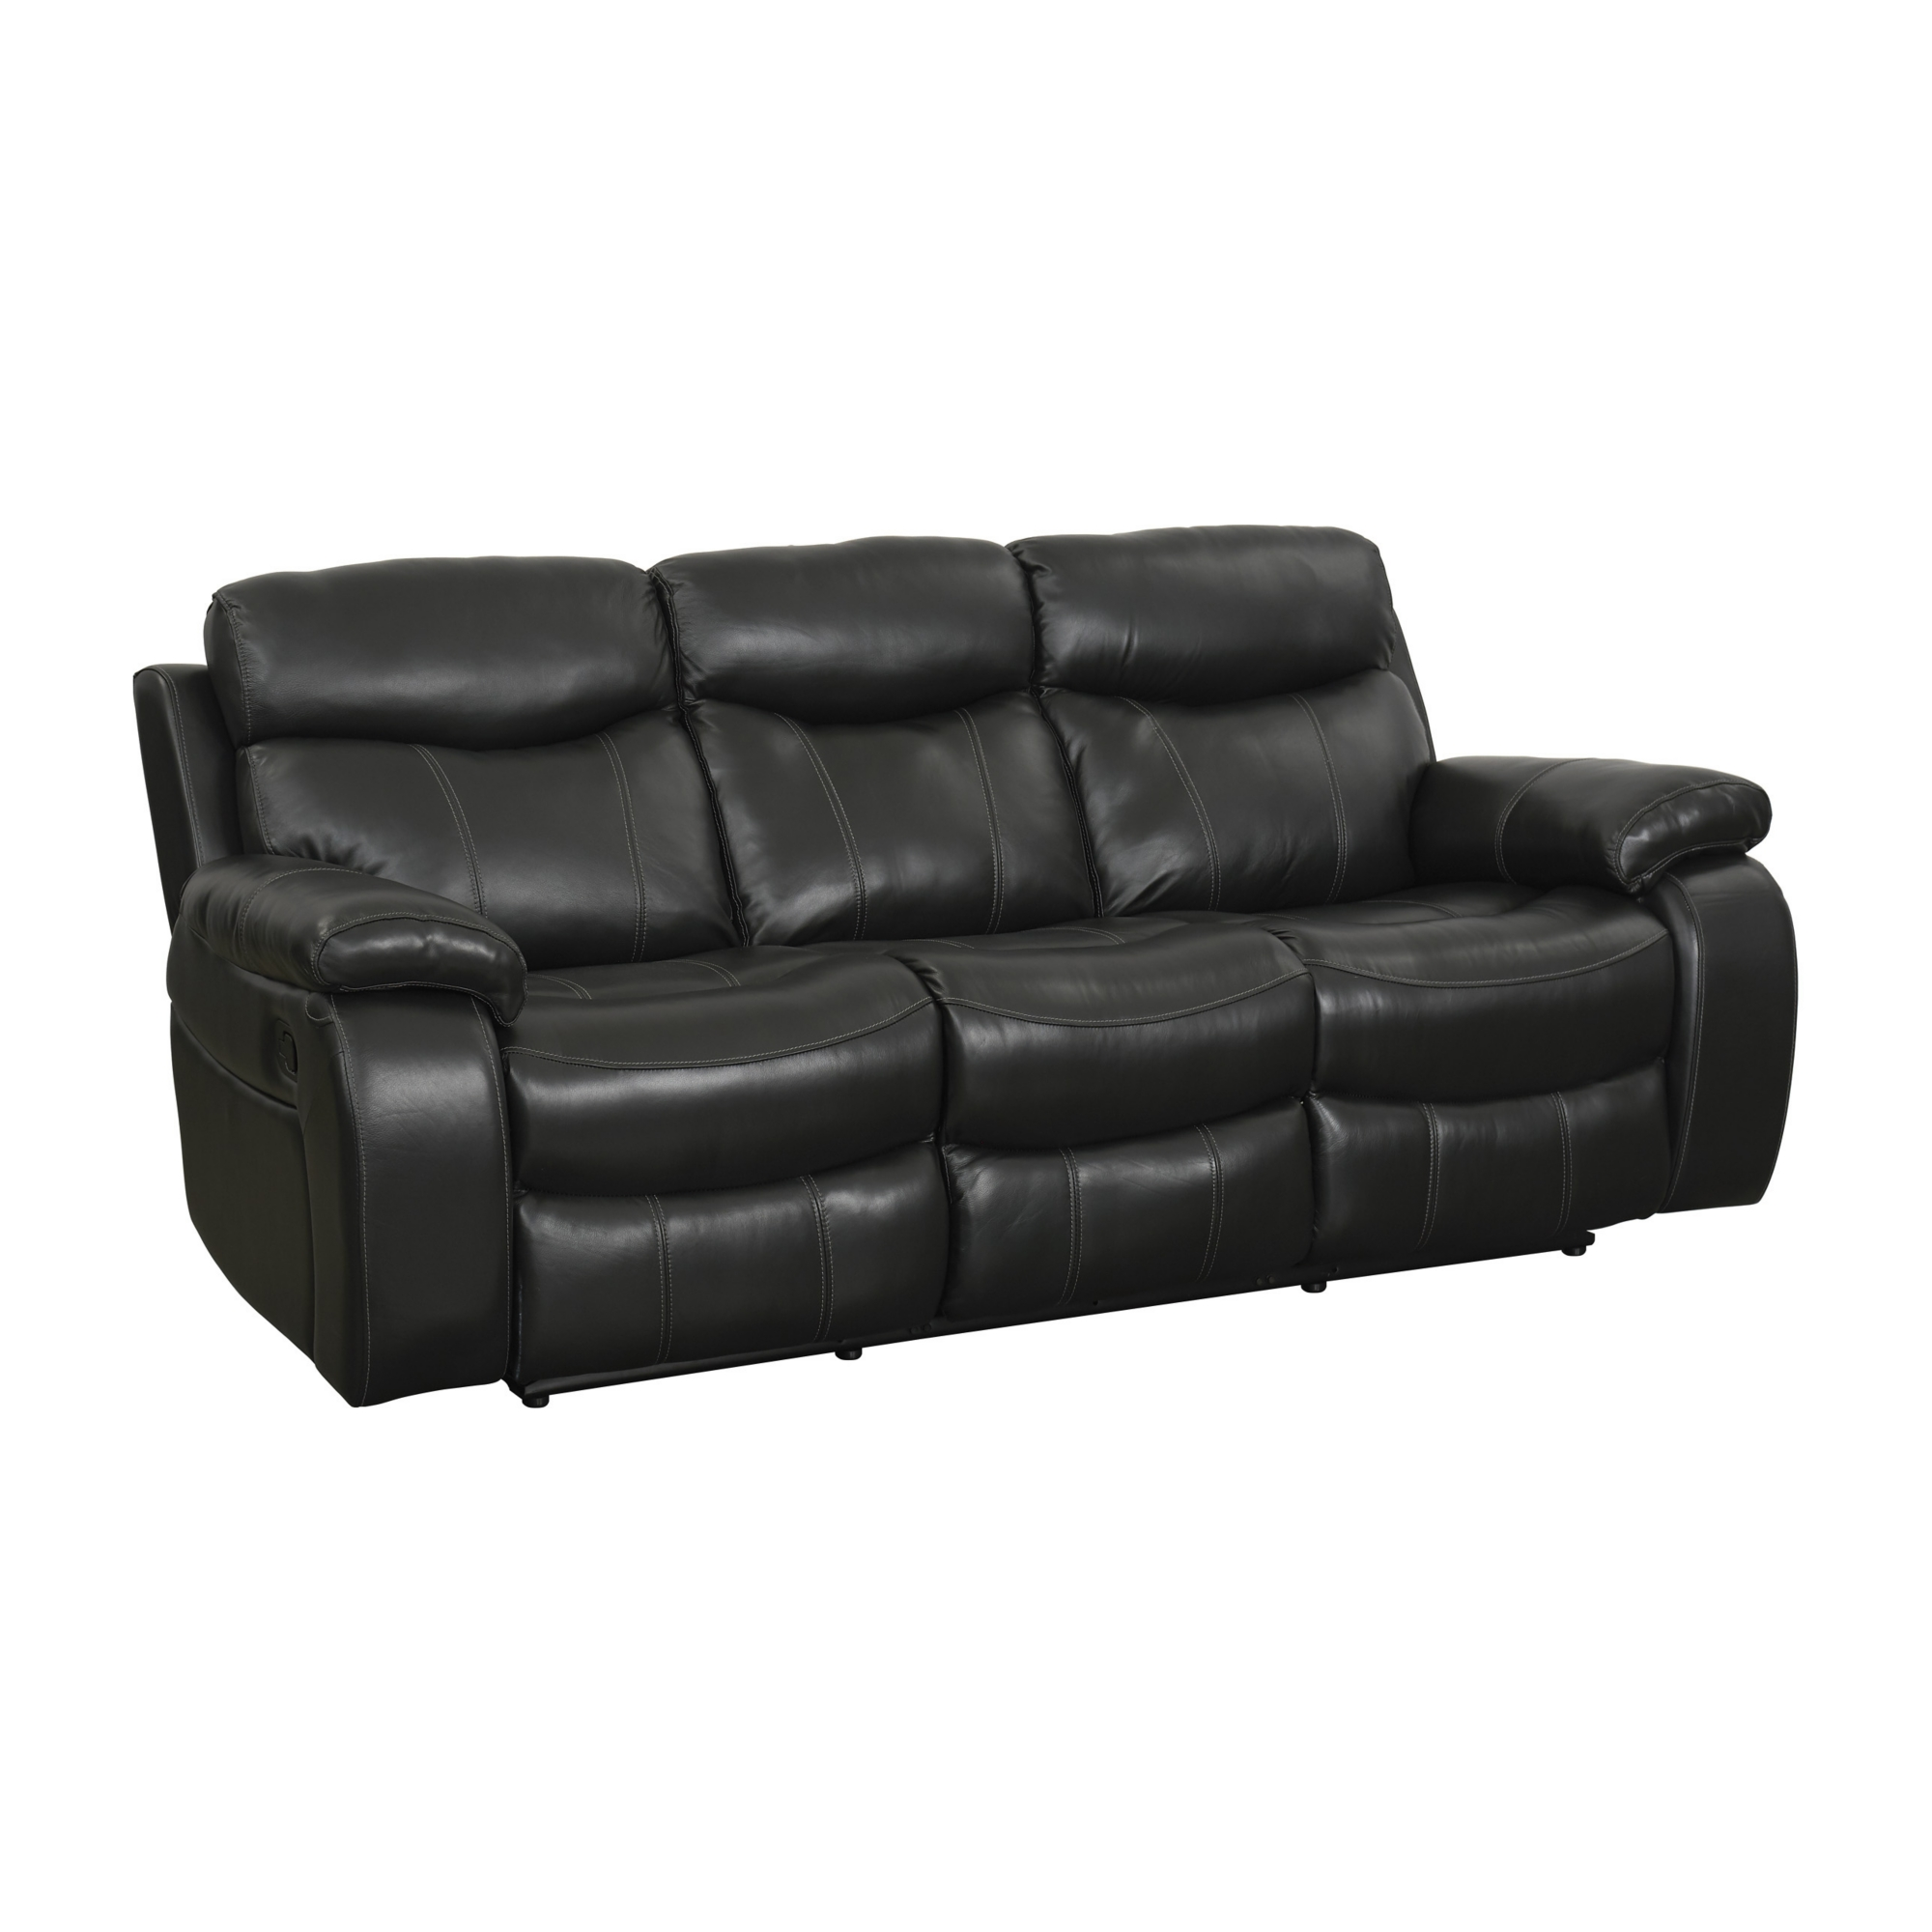 idea to myers your applied stores fort inside residence bears fl sofas furniture attractive savon